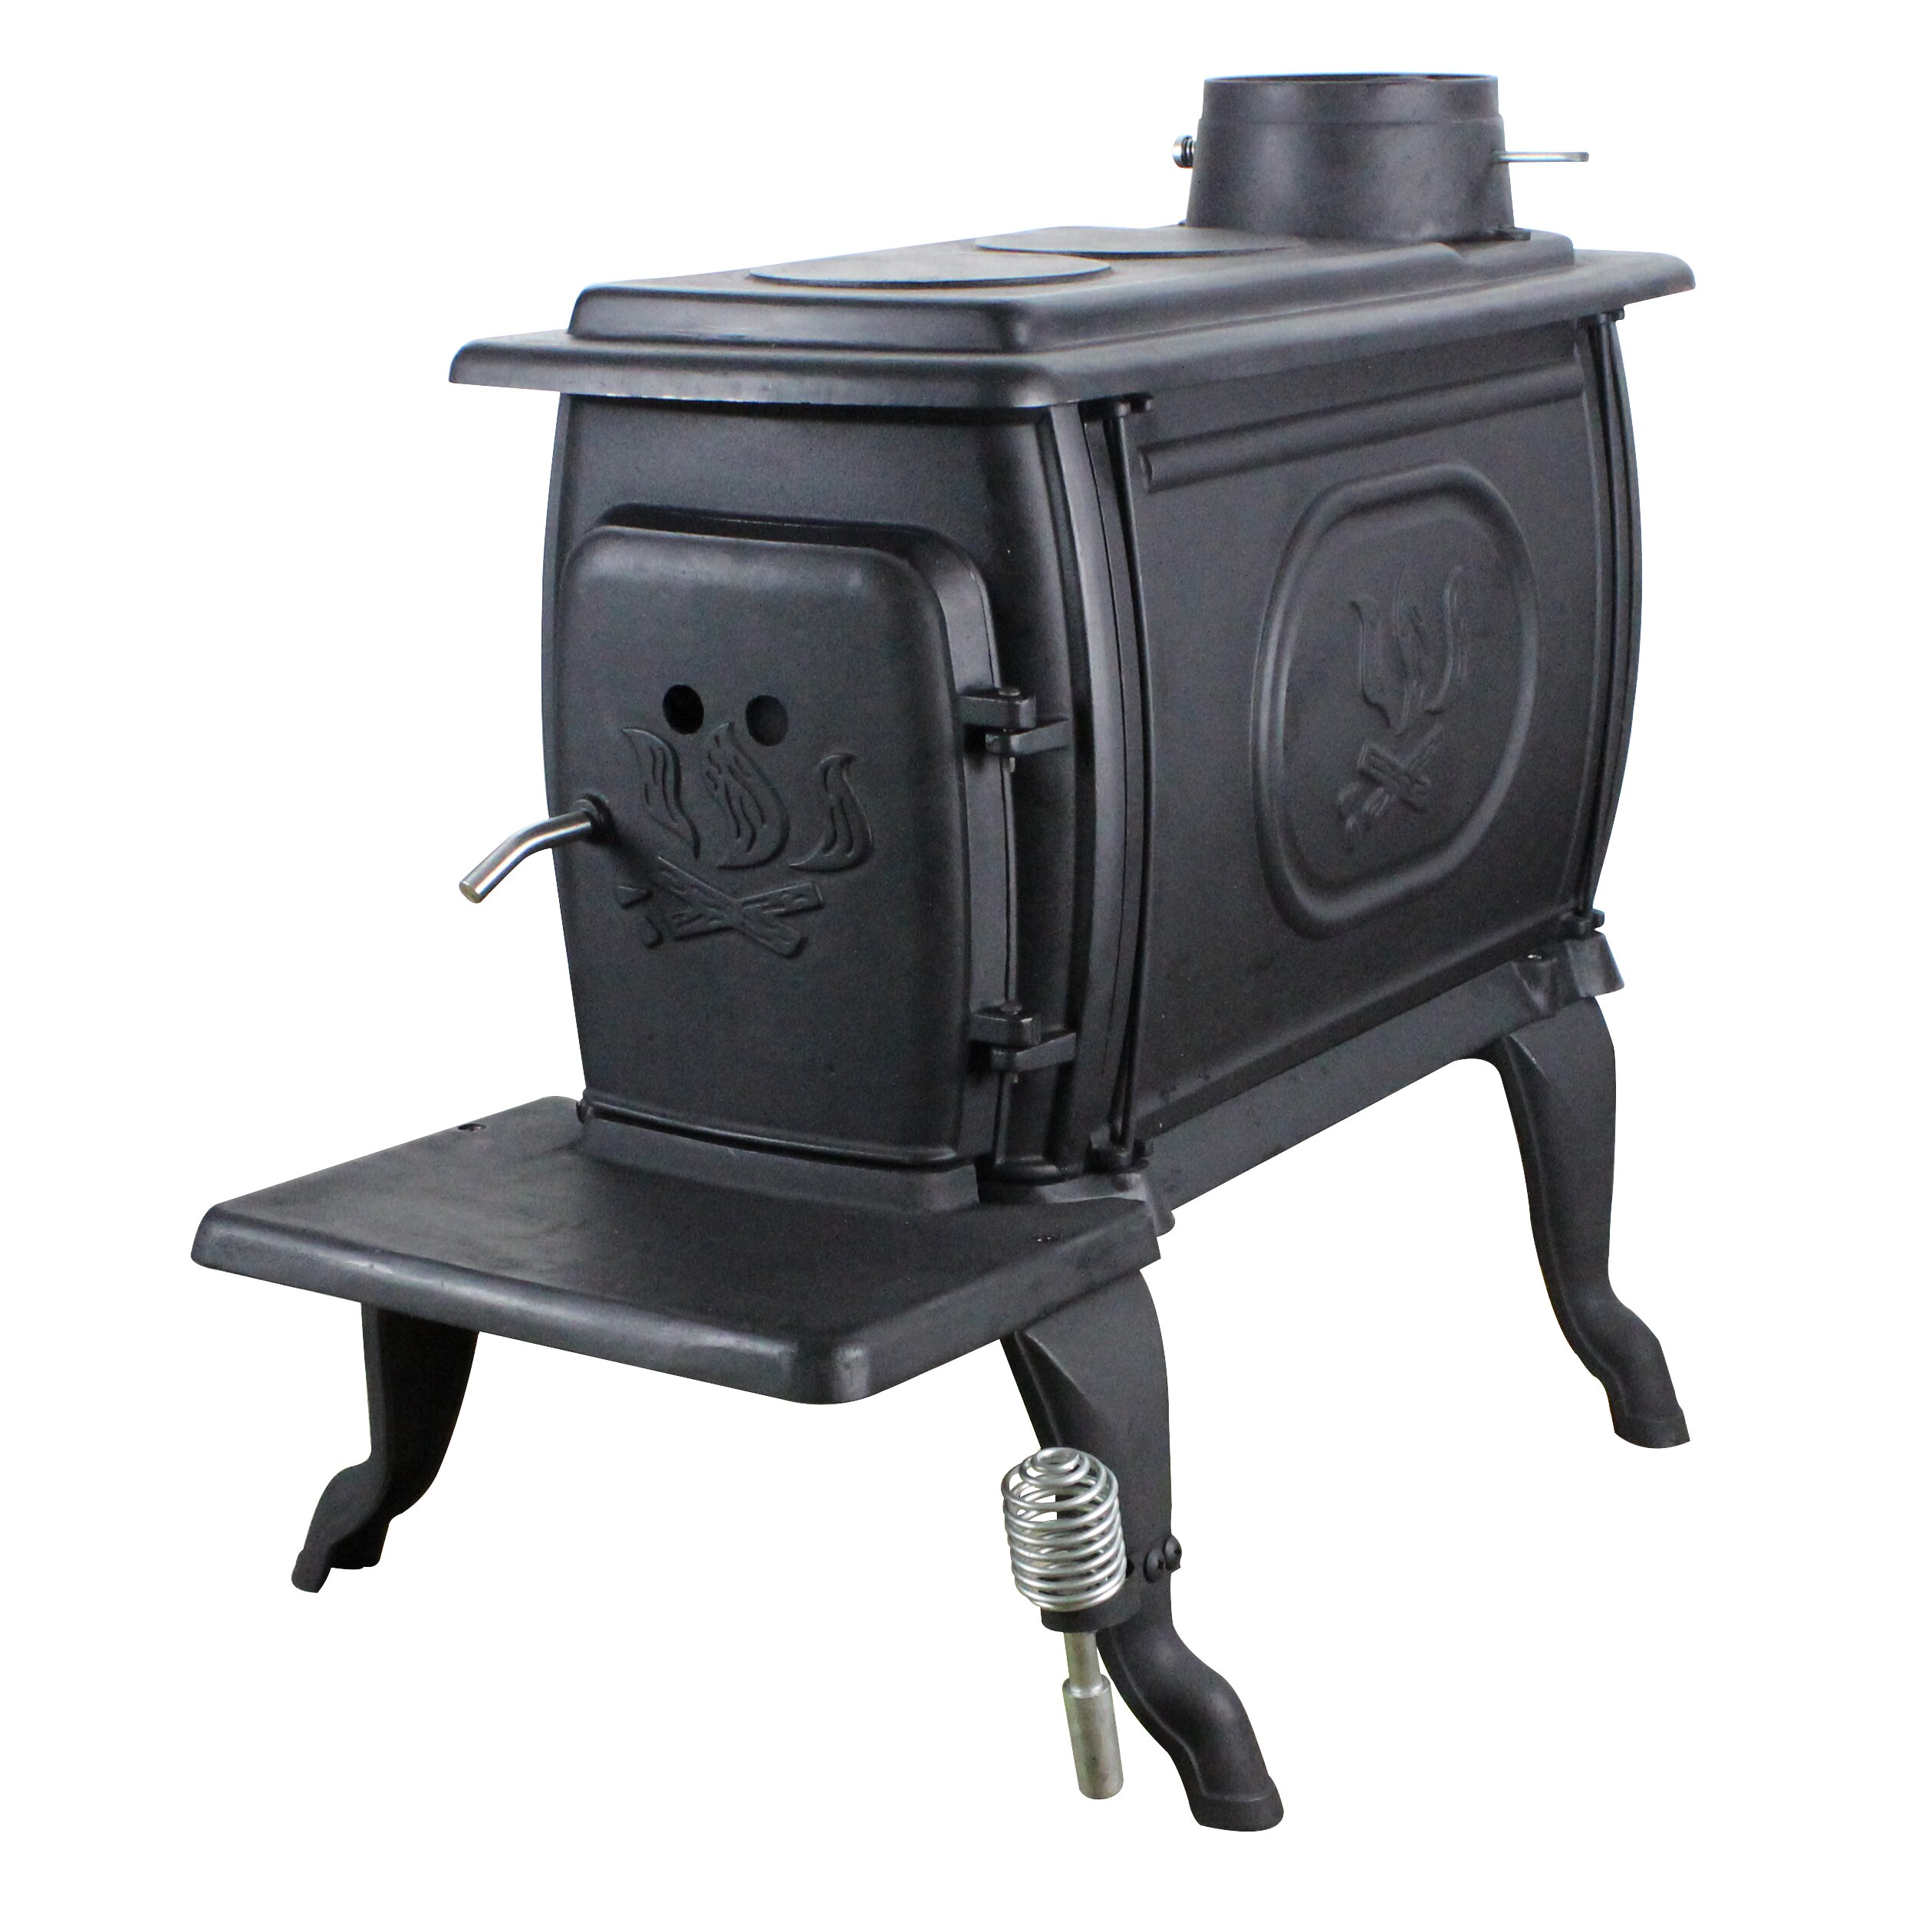 us stove epa certified cast iron log 900 square foot wood stove wayfair. Black Bedroom Furniture Sets. Home Design Ideas